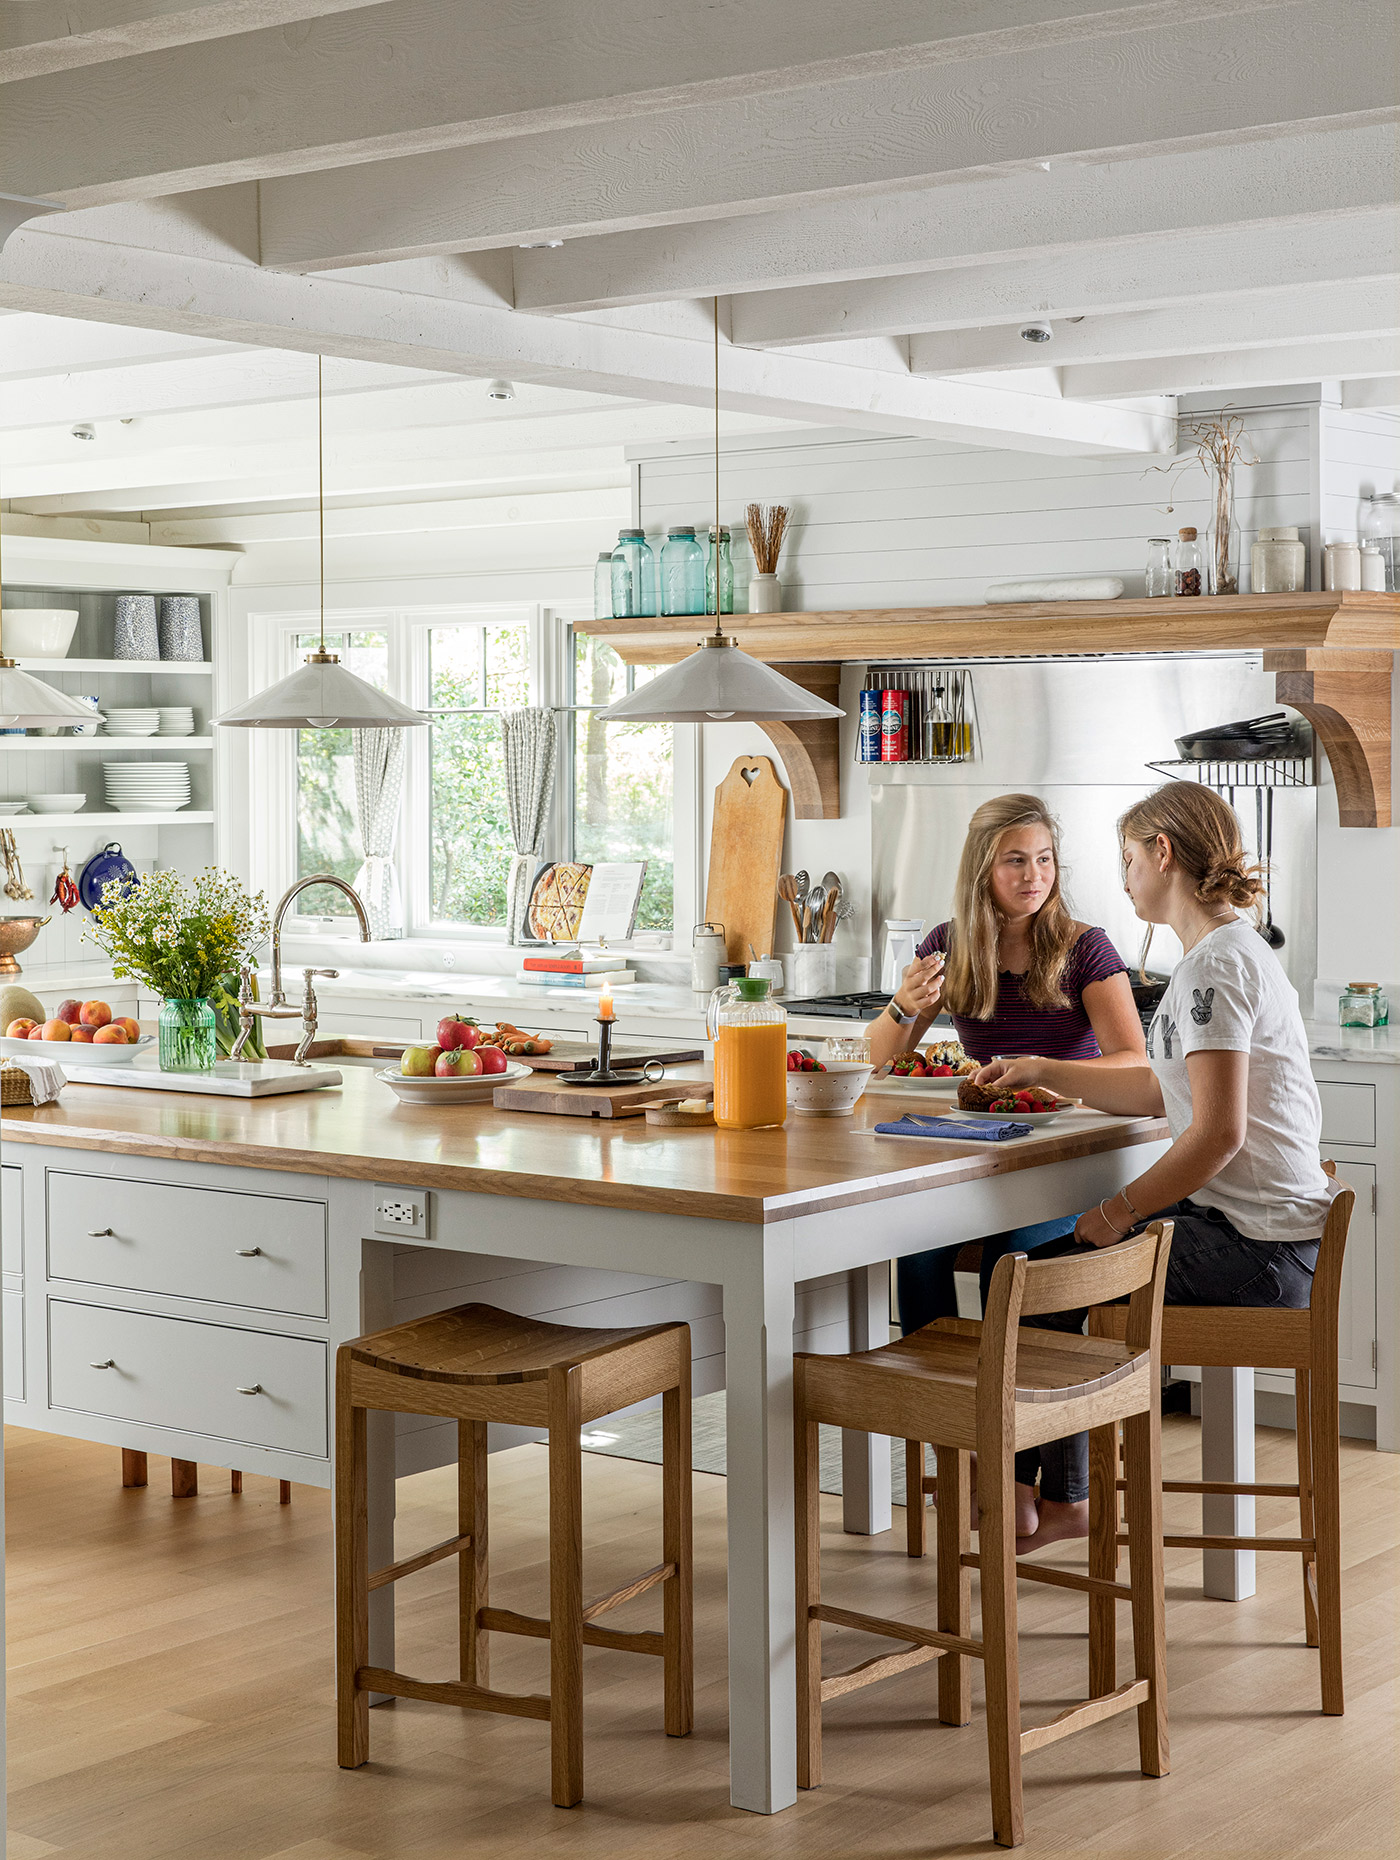 Designing A Kitchen Where It S Easy For Family To Come